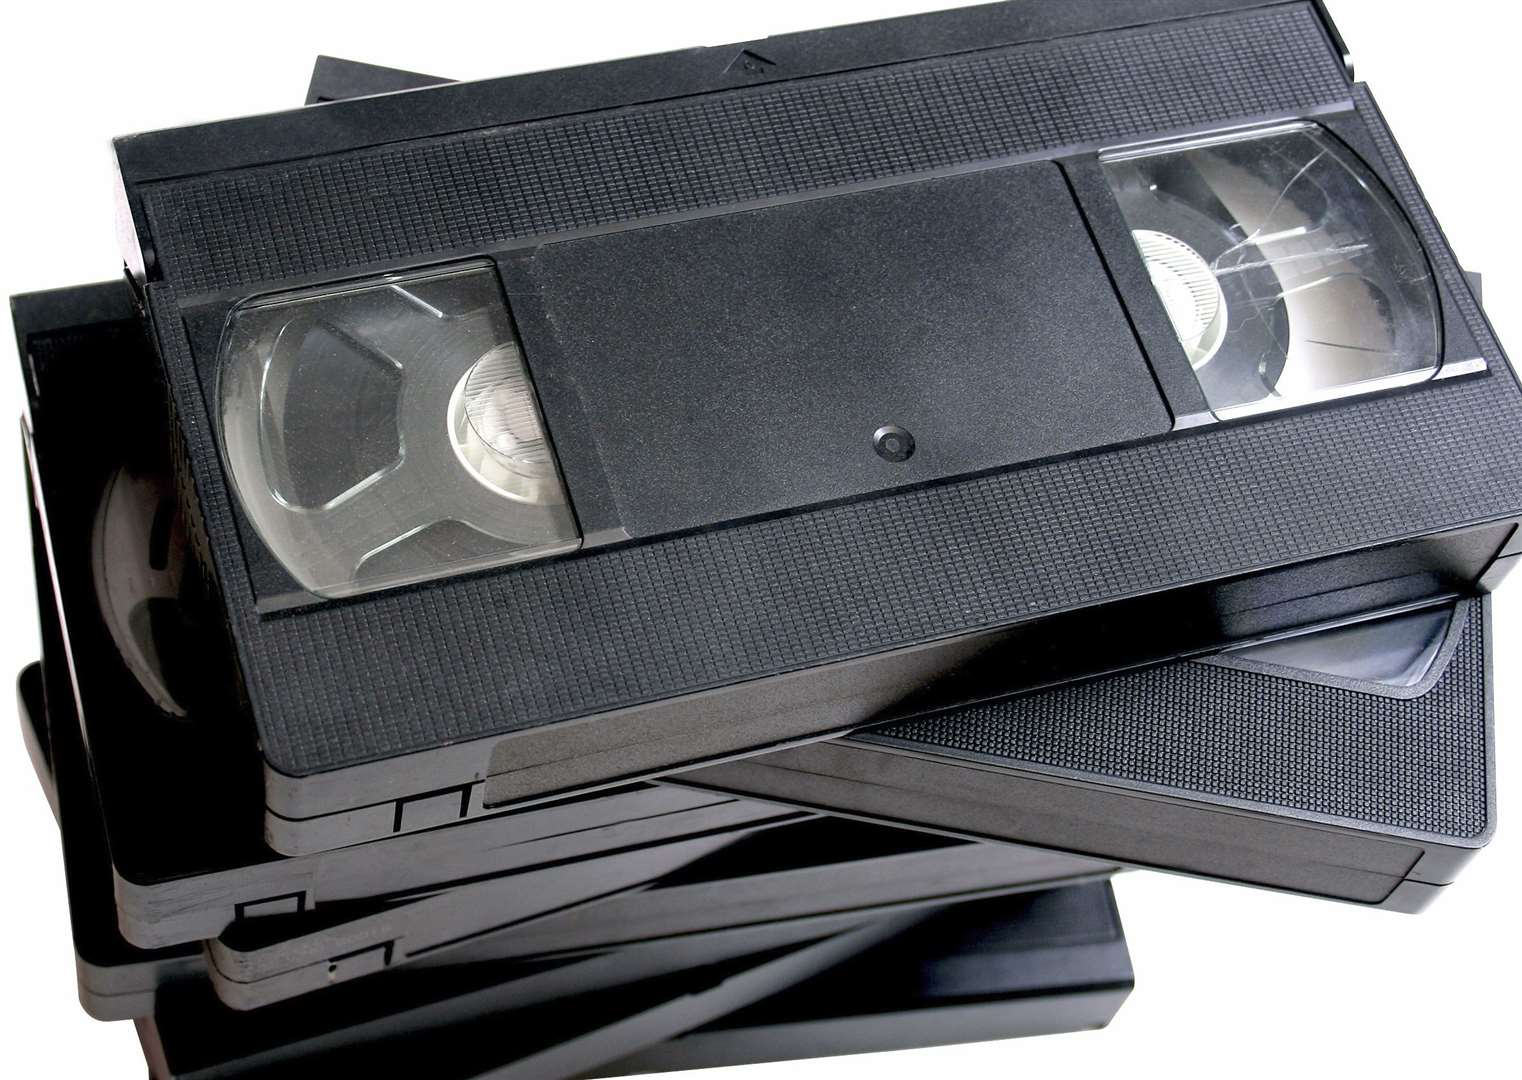 The VHS video tape - a distant relative of the Blu-ray